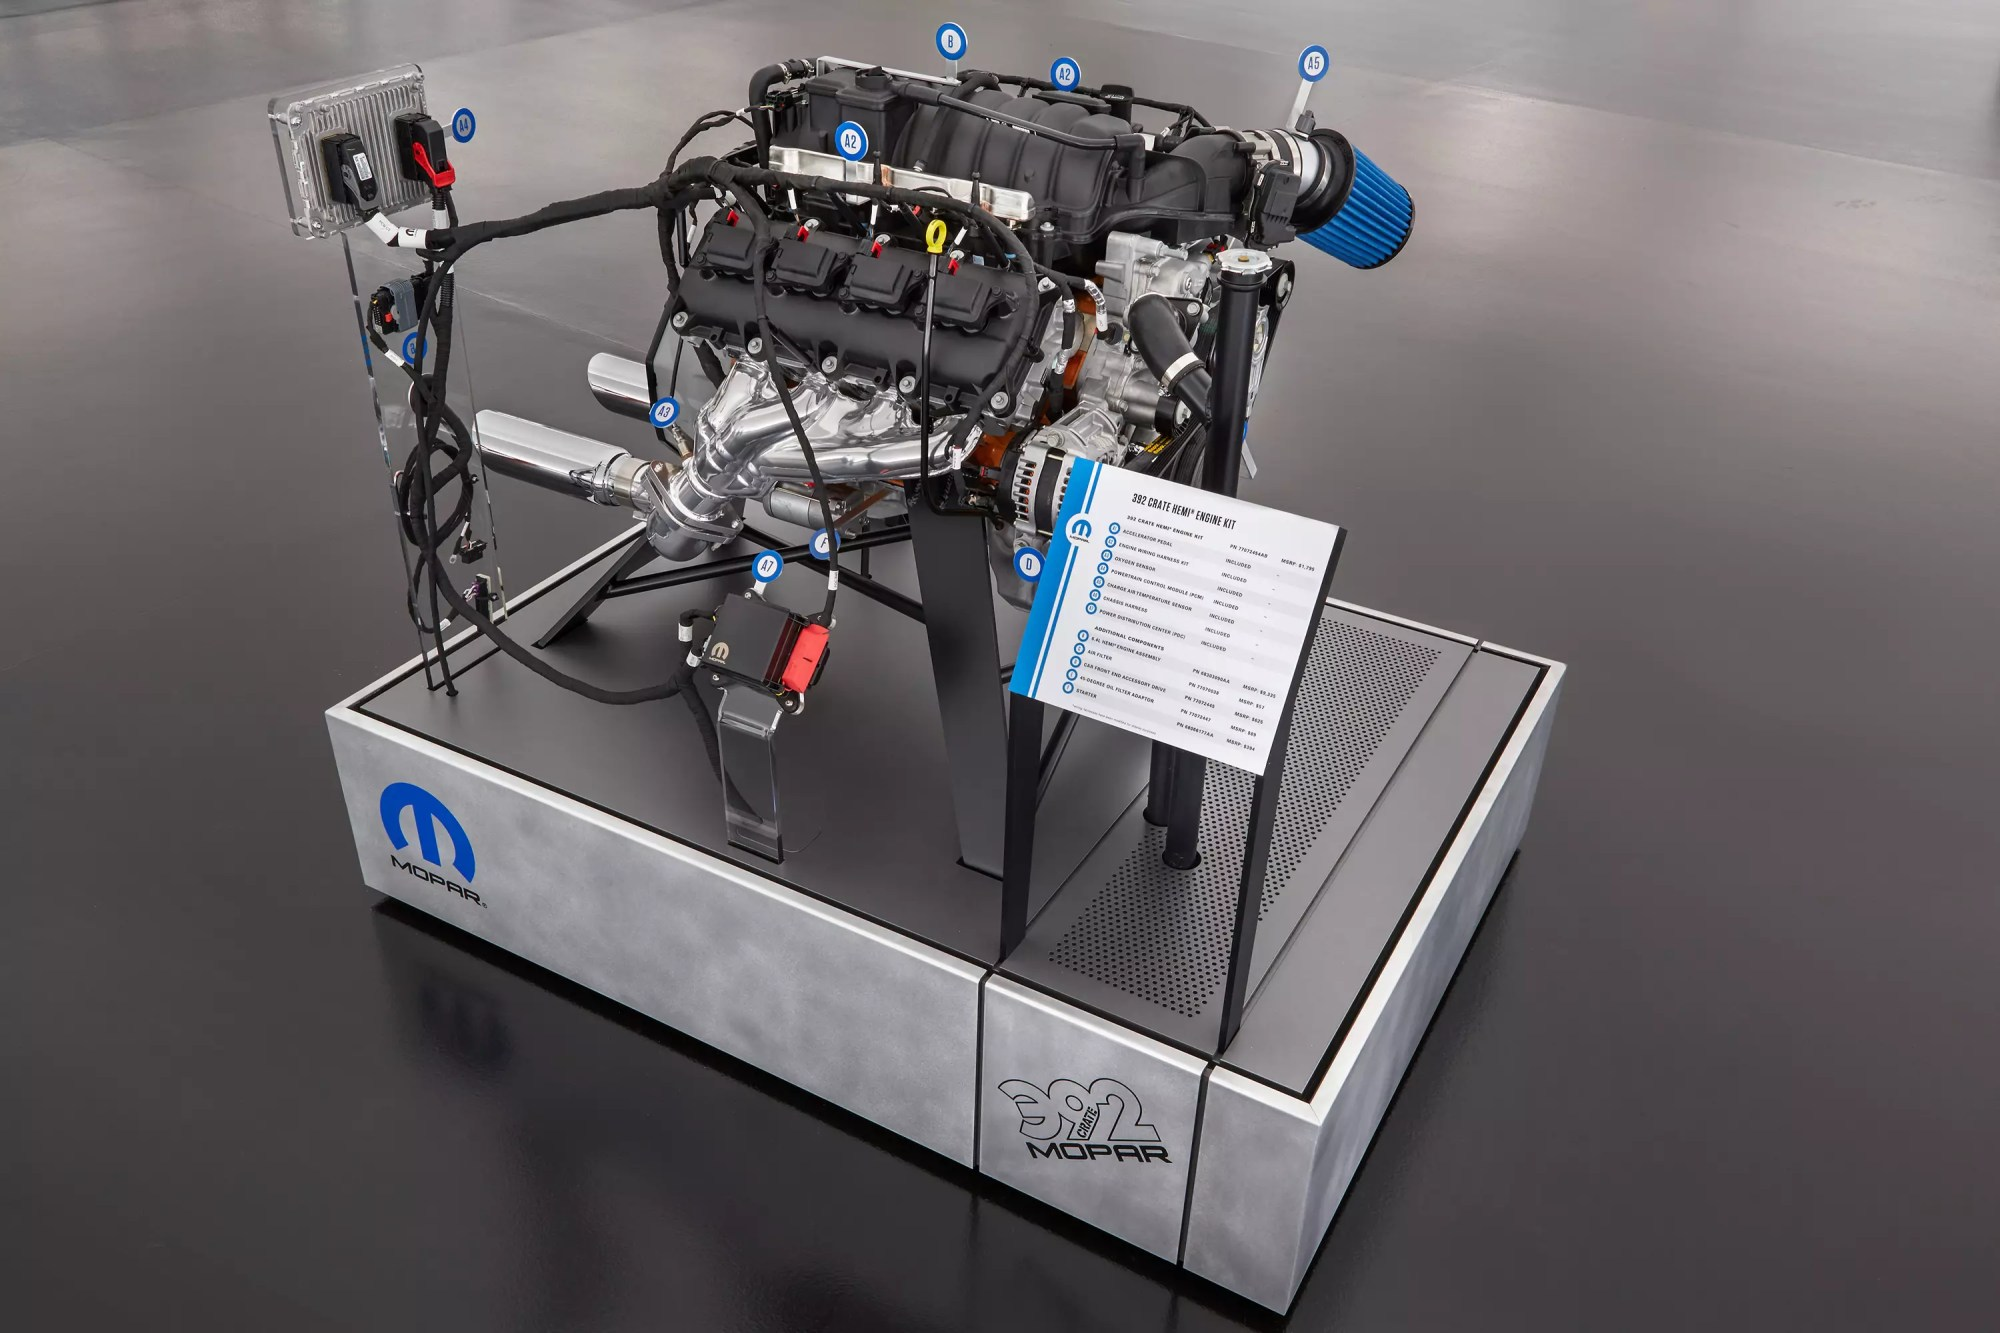 hight resolution of this exploded view of a 6 4 liter hemi engine highlights the components